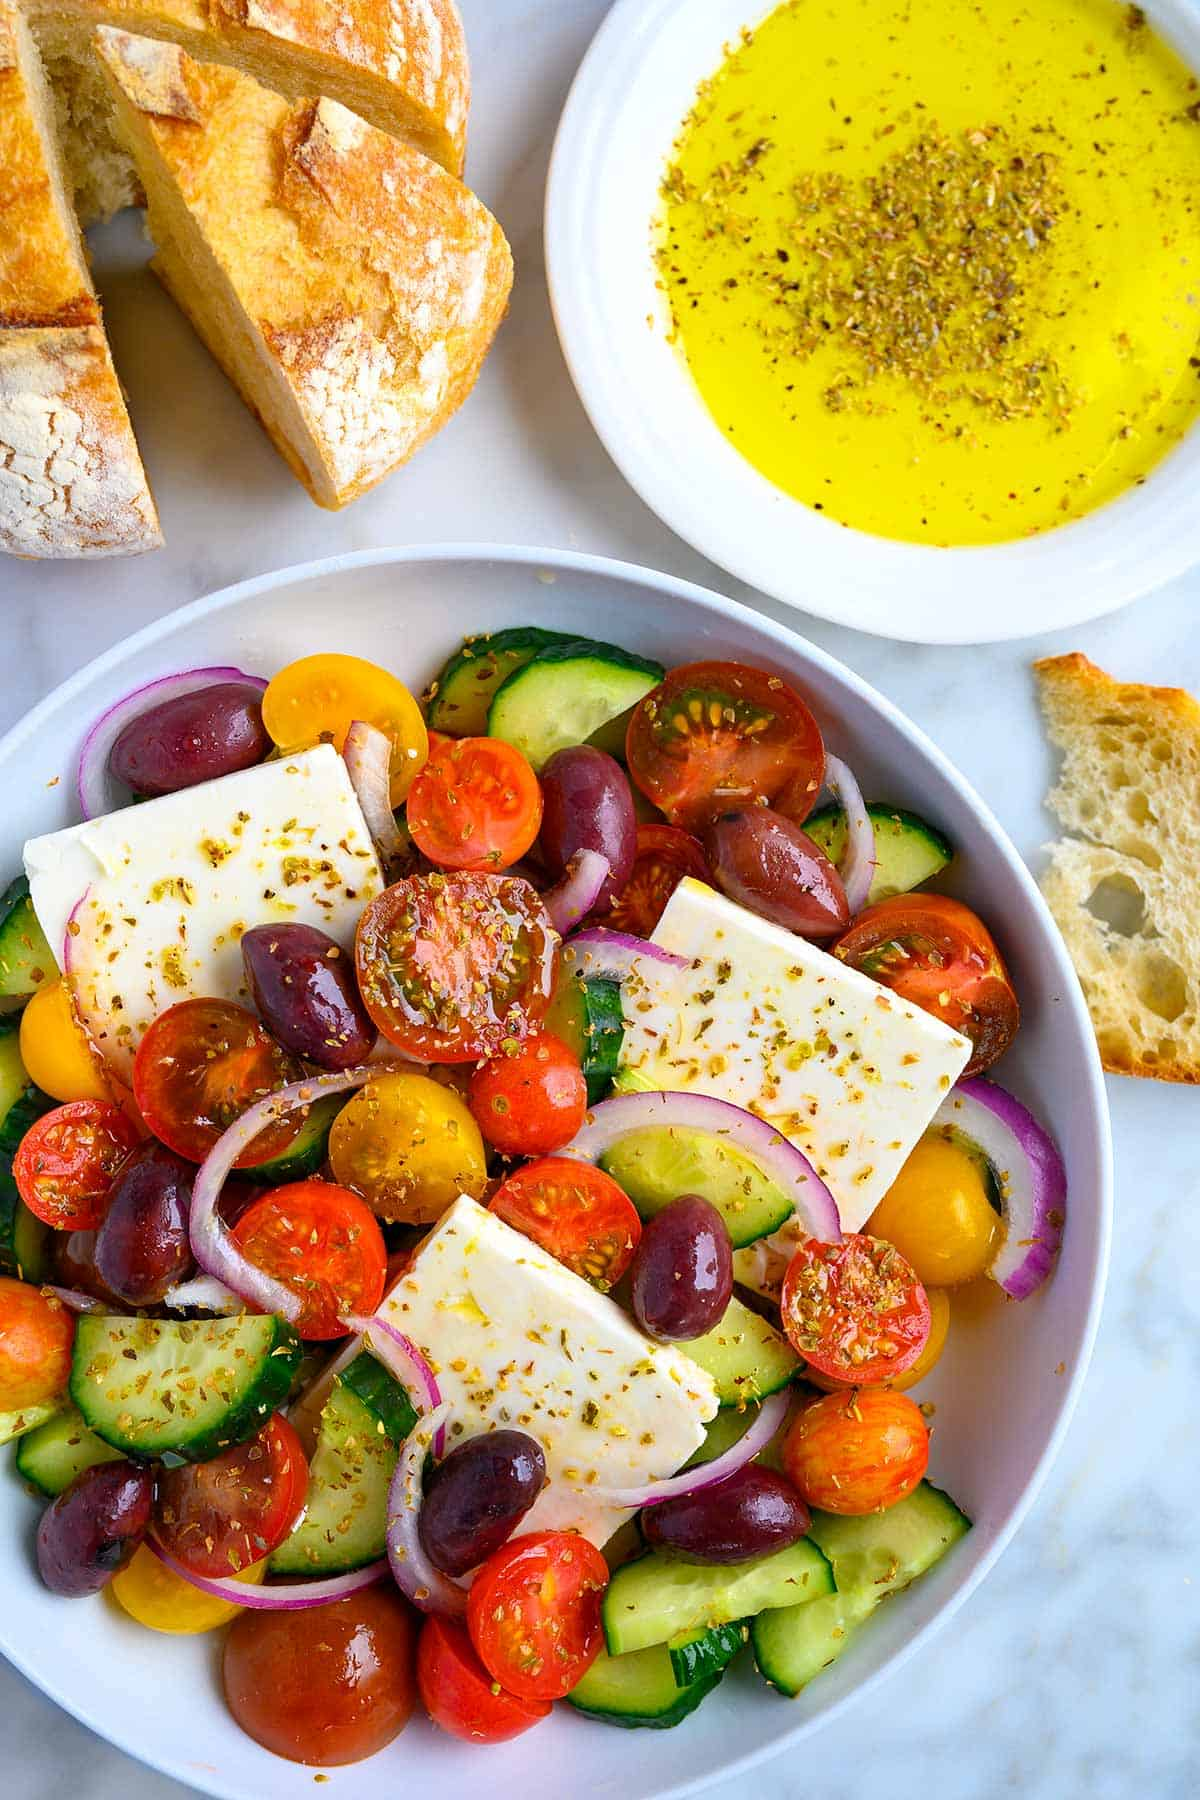 Bowl filled with a Greek salad with bread and dipping oil to the side.